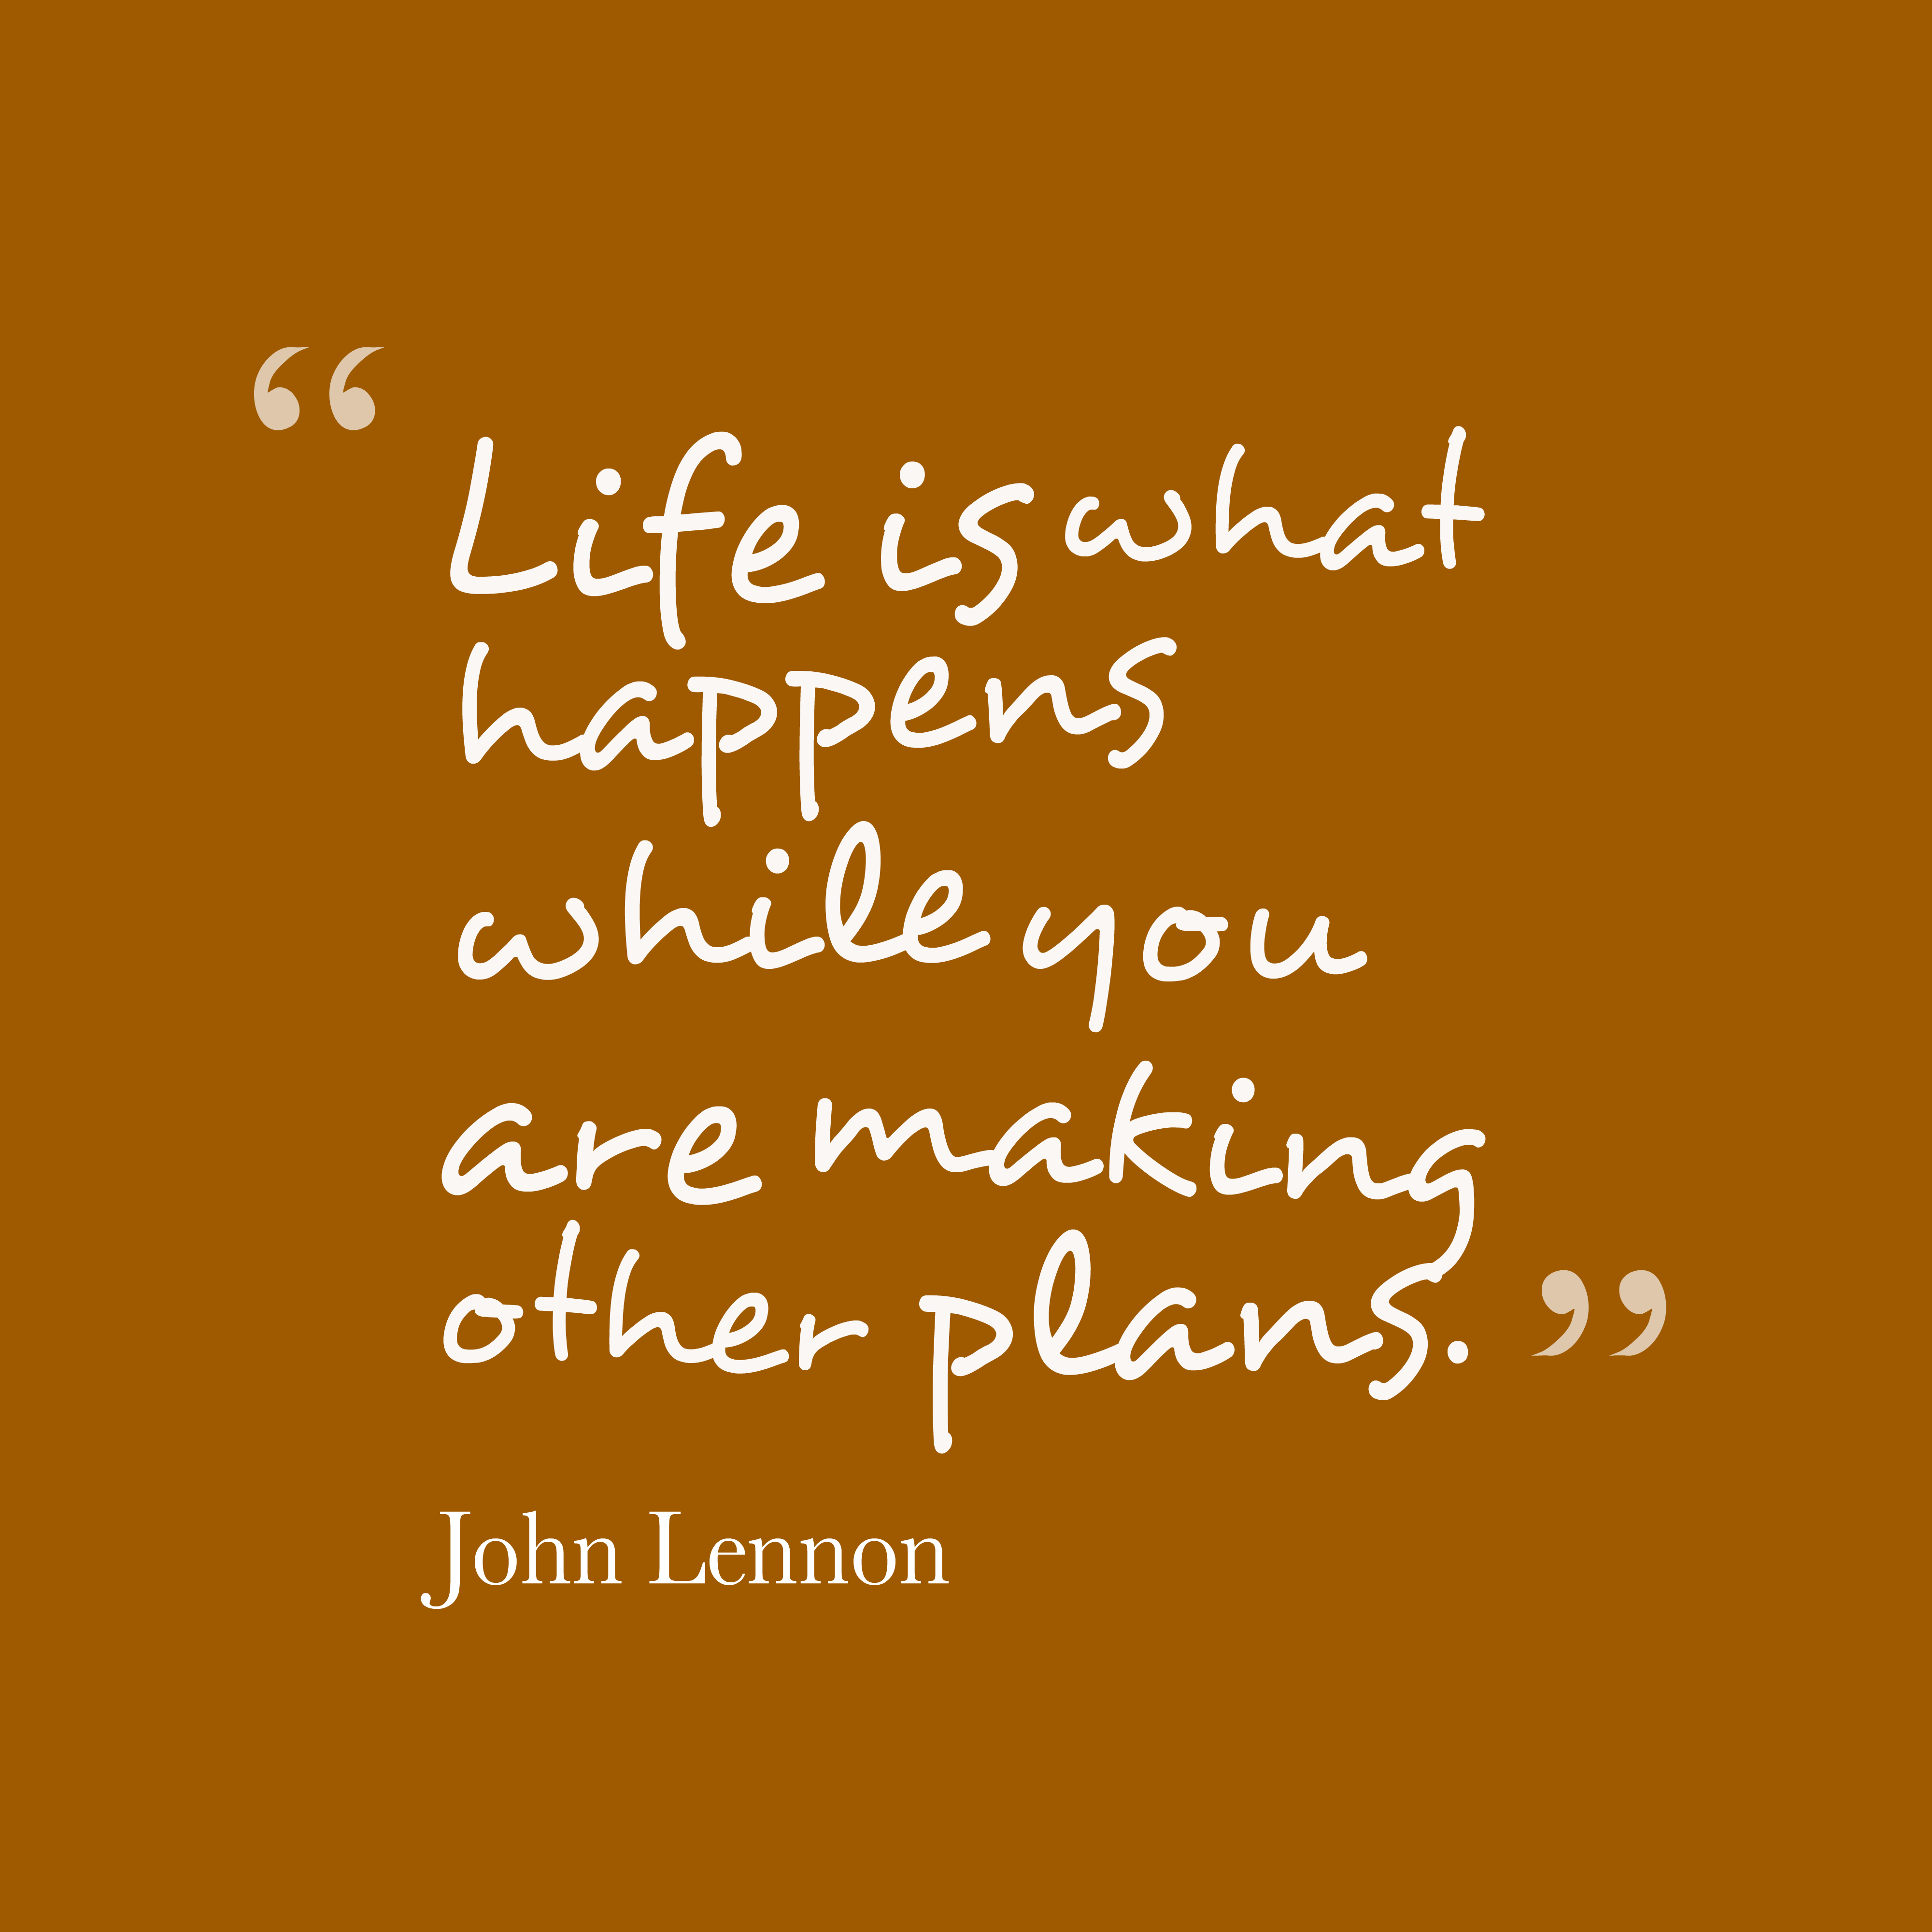 Quotes image of Life is what happens while you are making other plans.